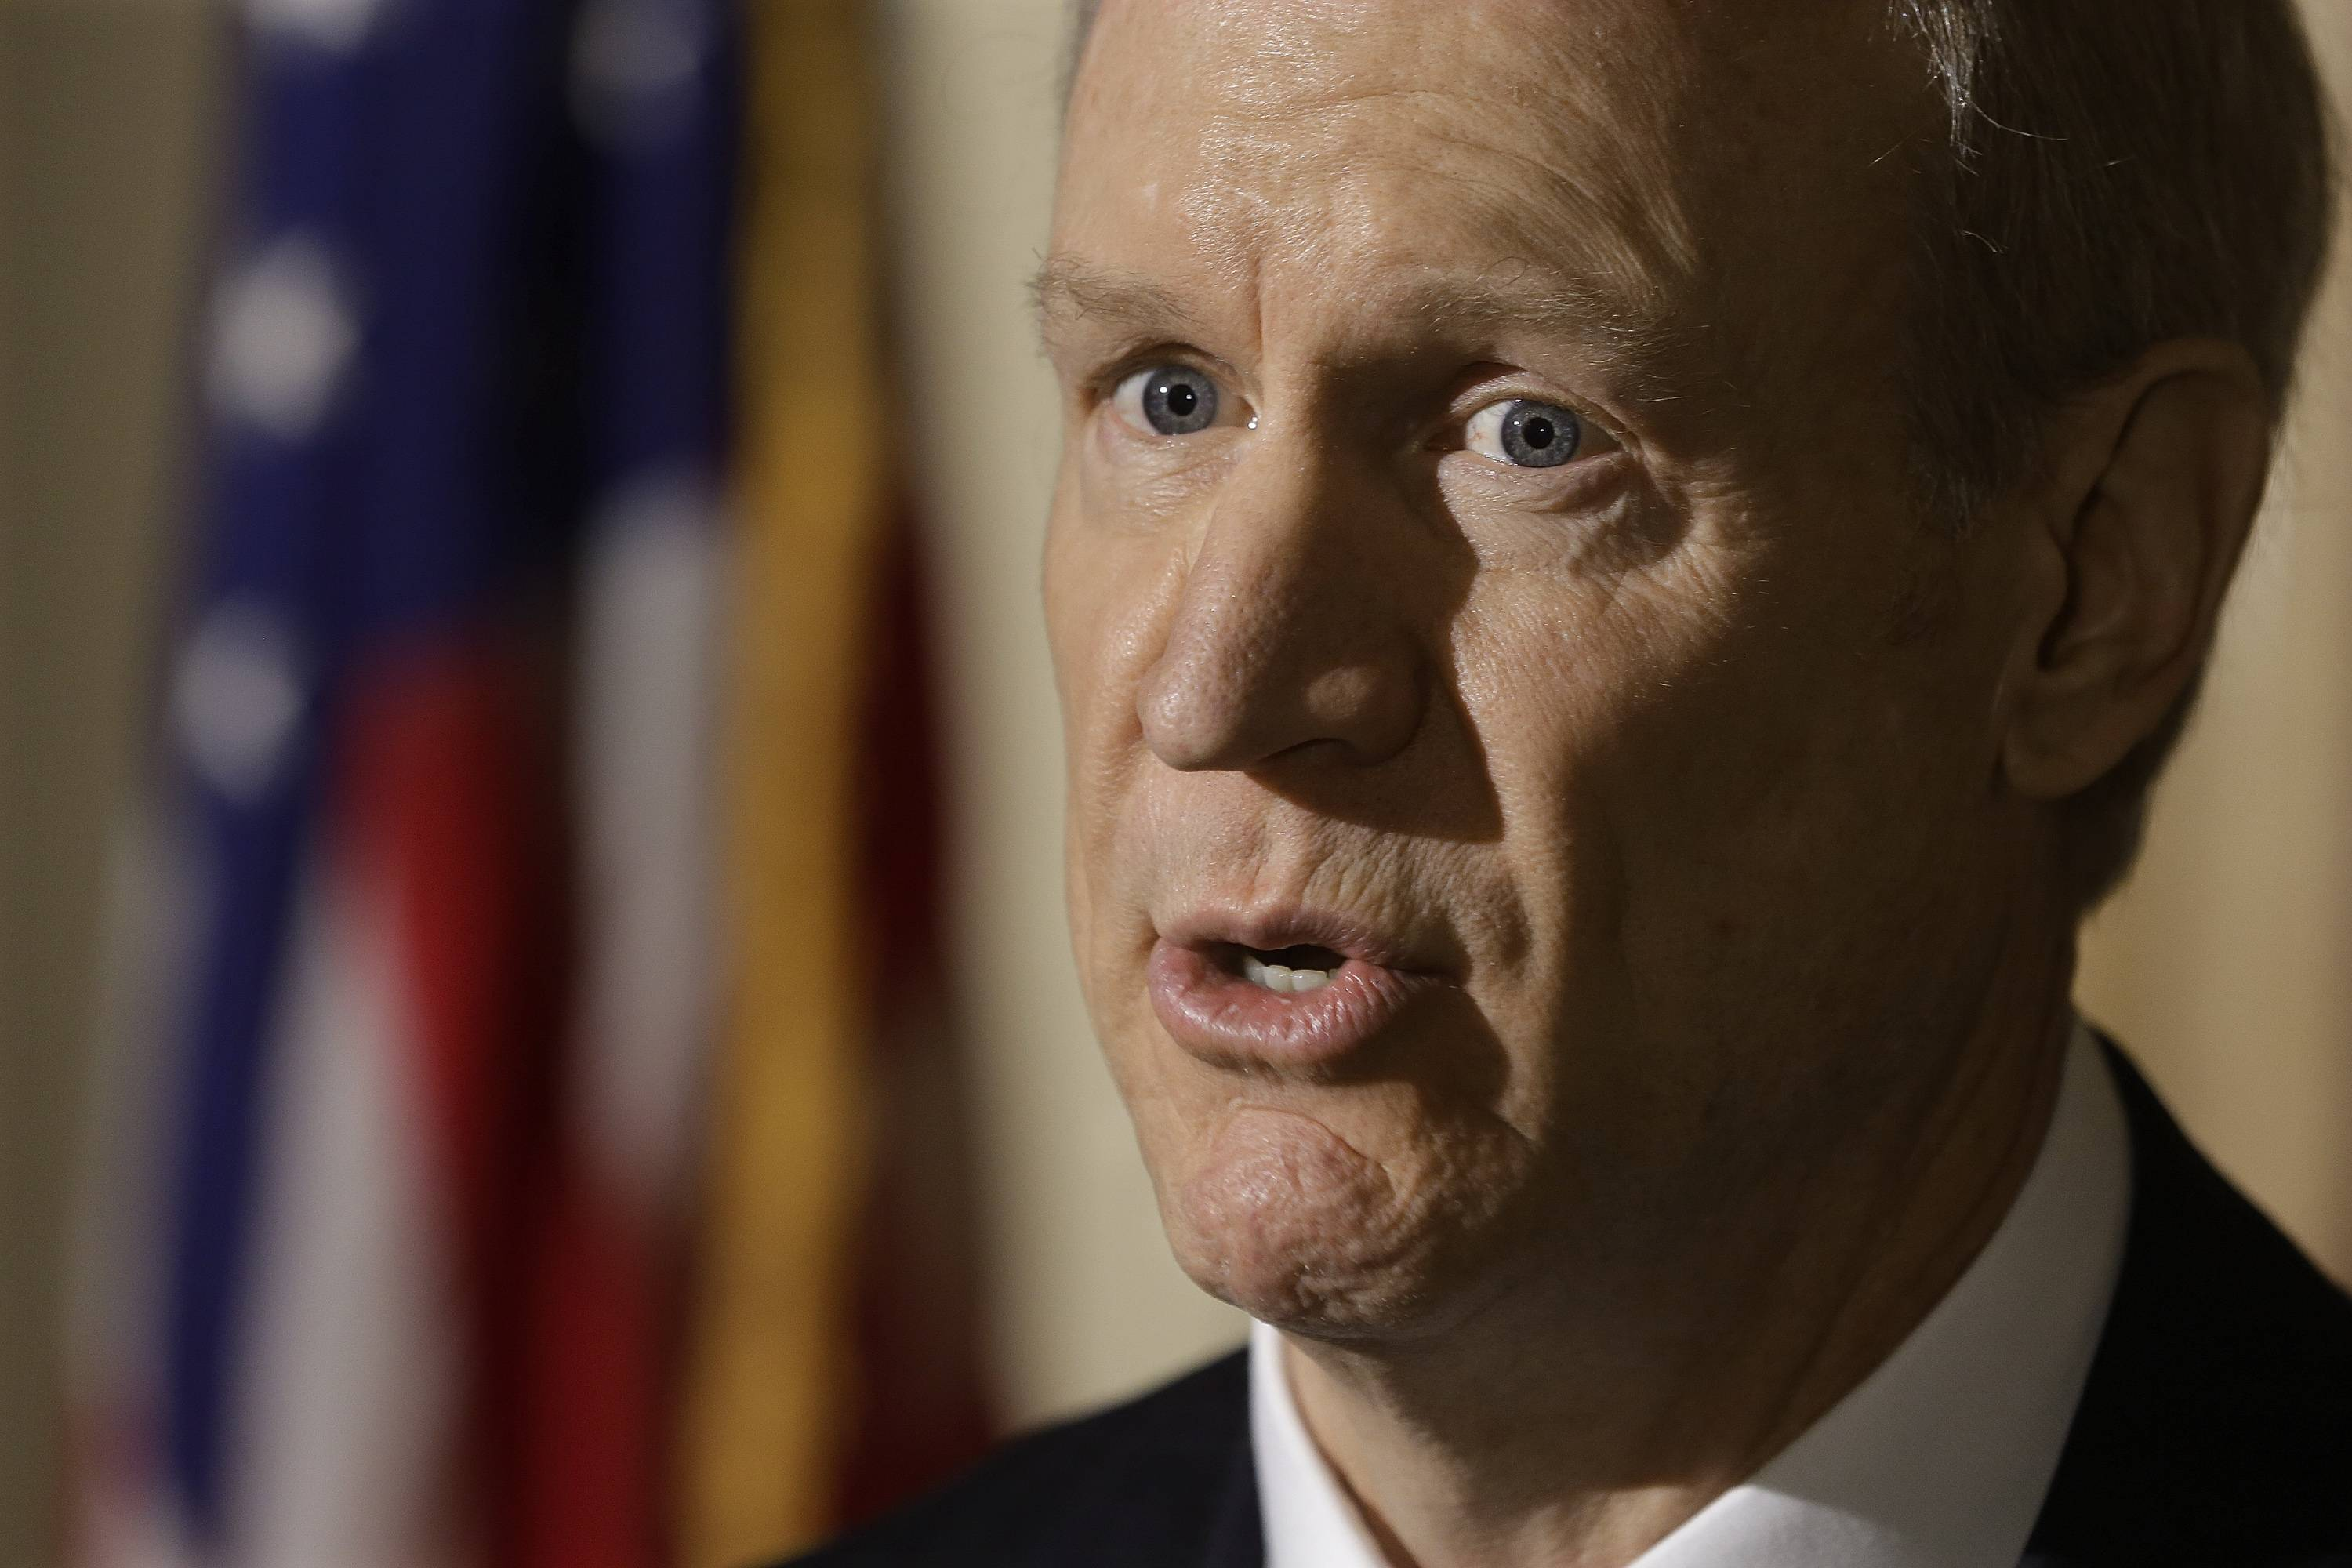 Less money, more bills loom for cash-strapped Illinois